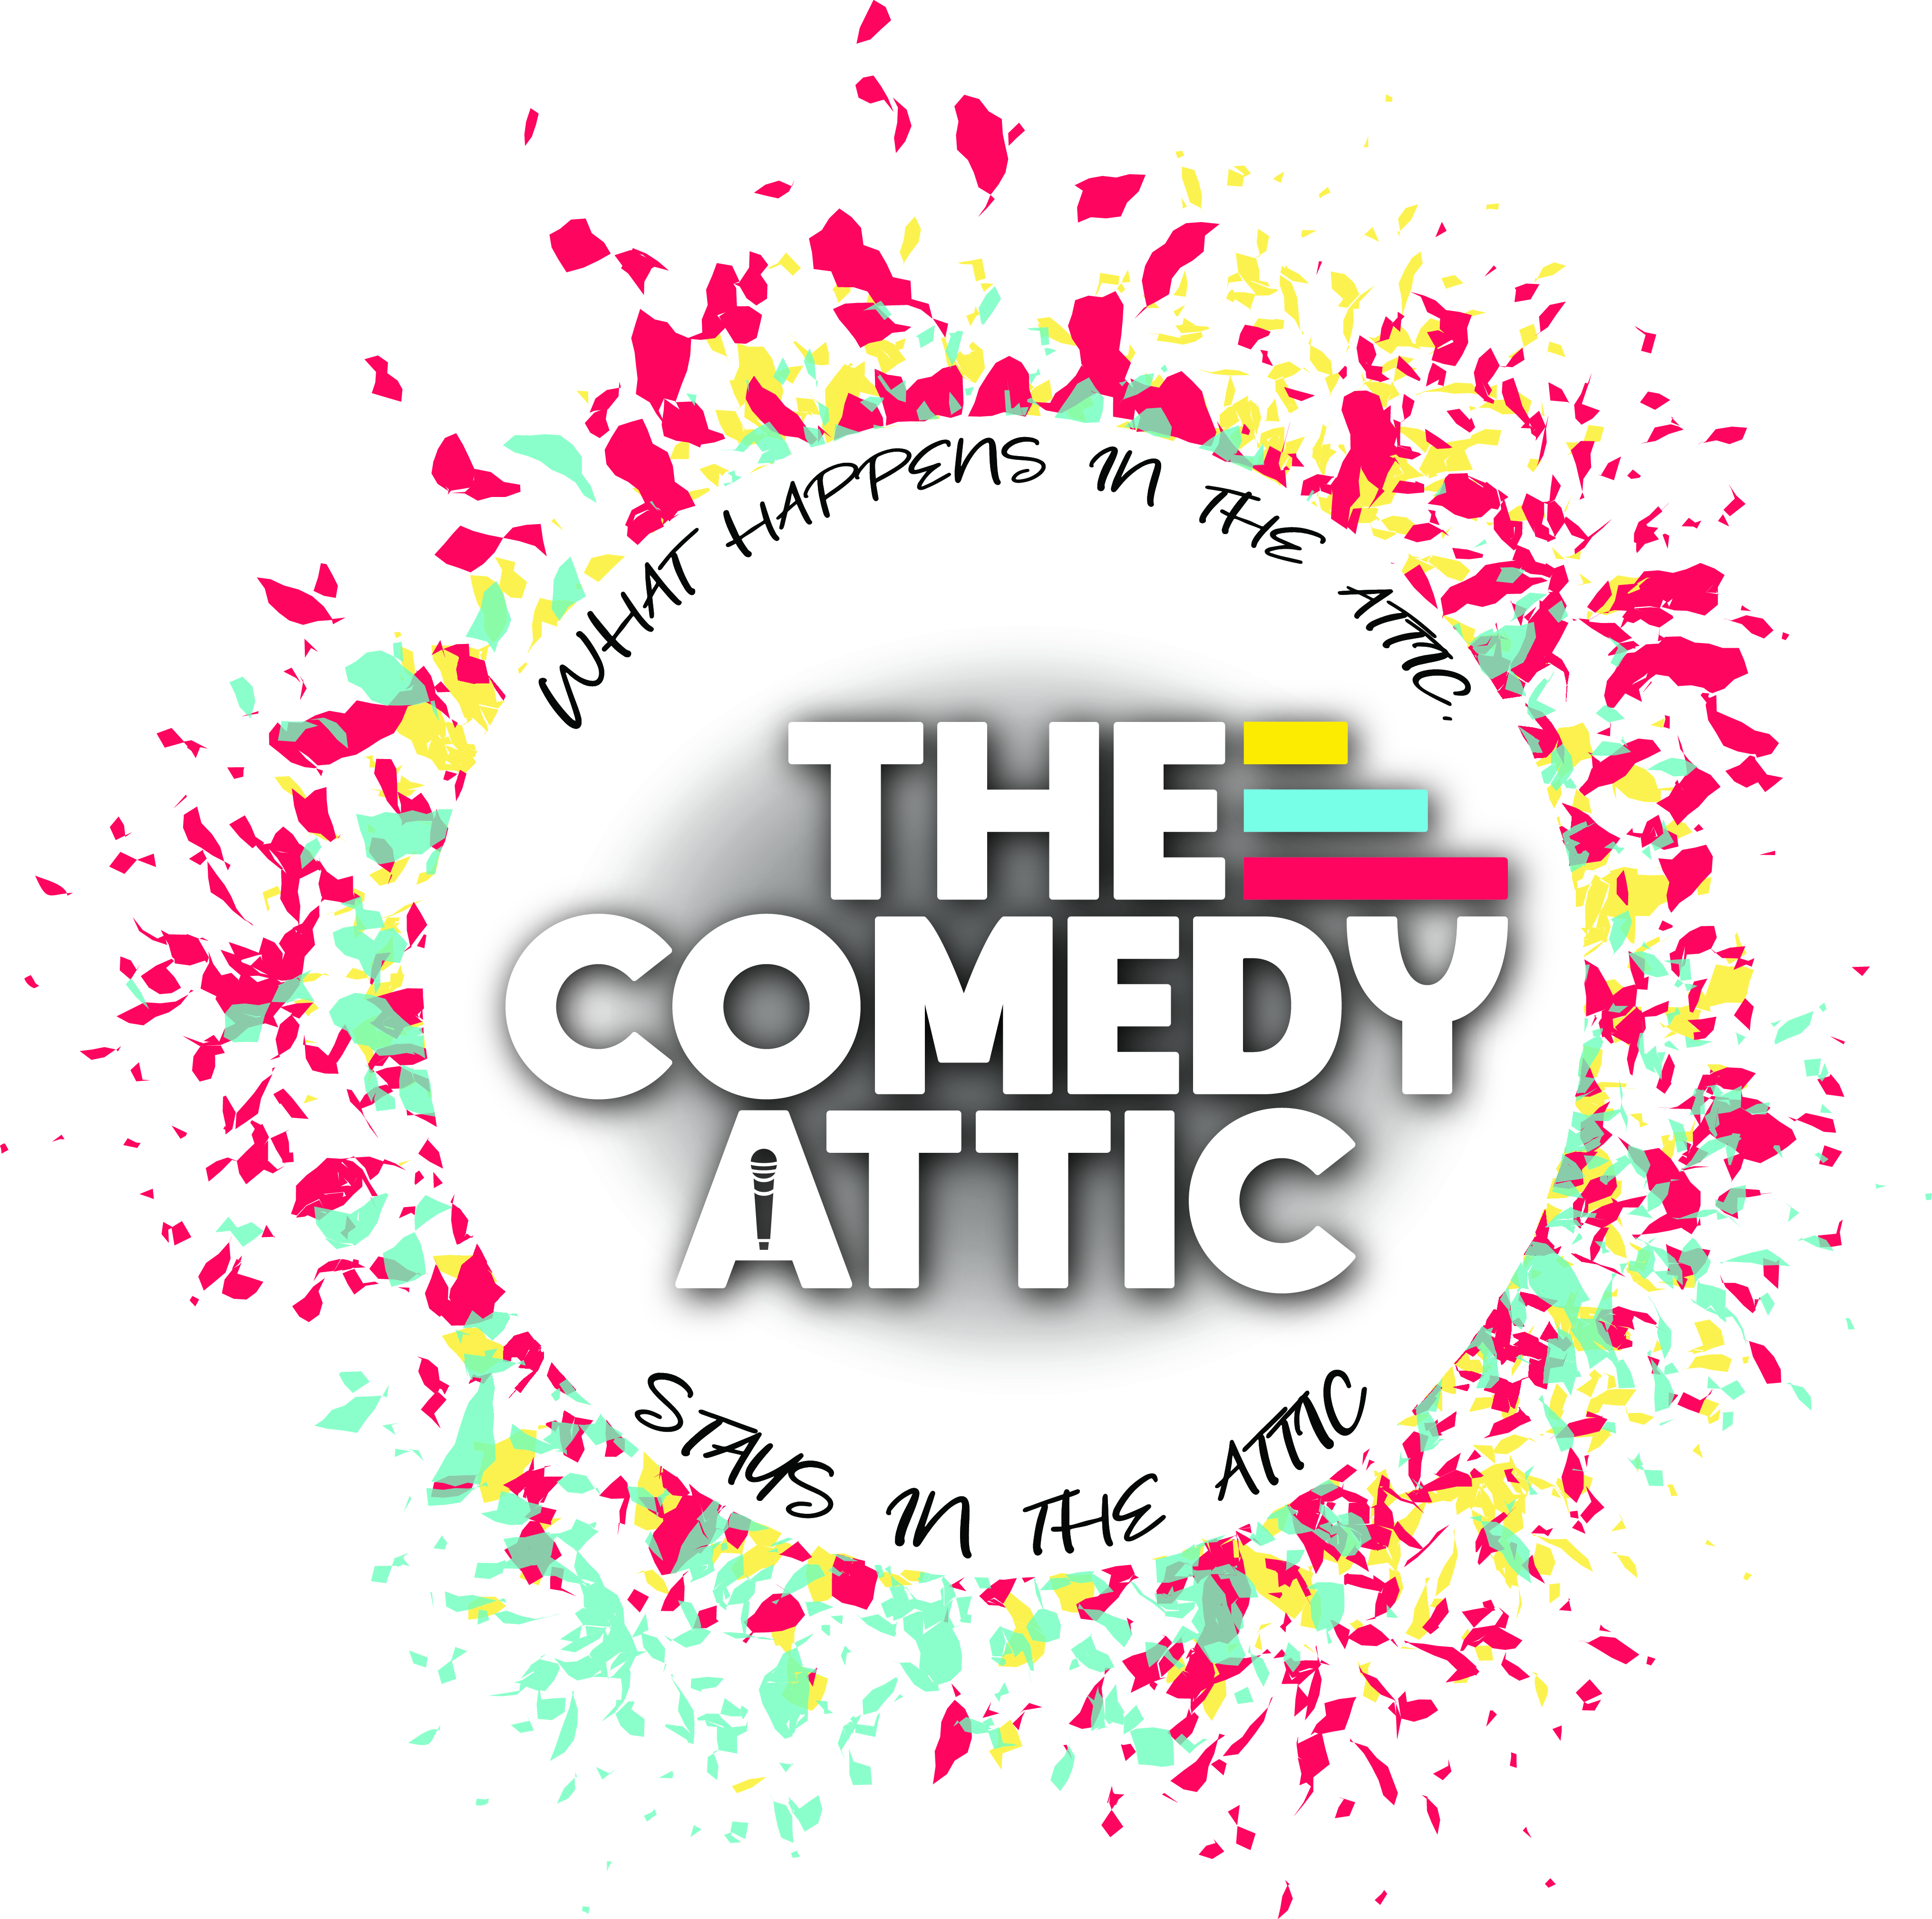 The comedy attic edinburgh jokepit comedy tickets